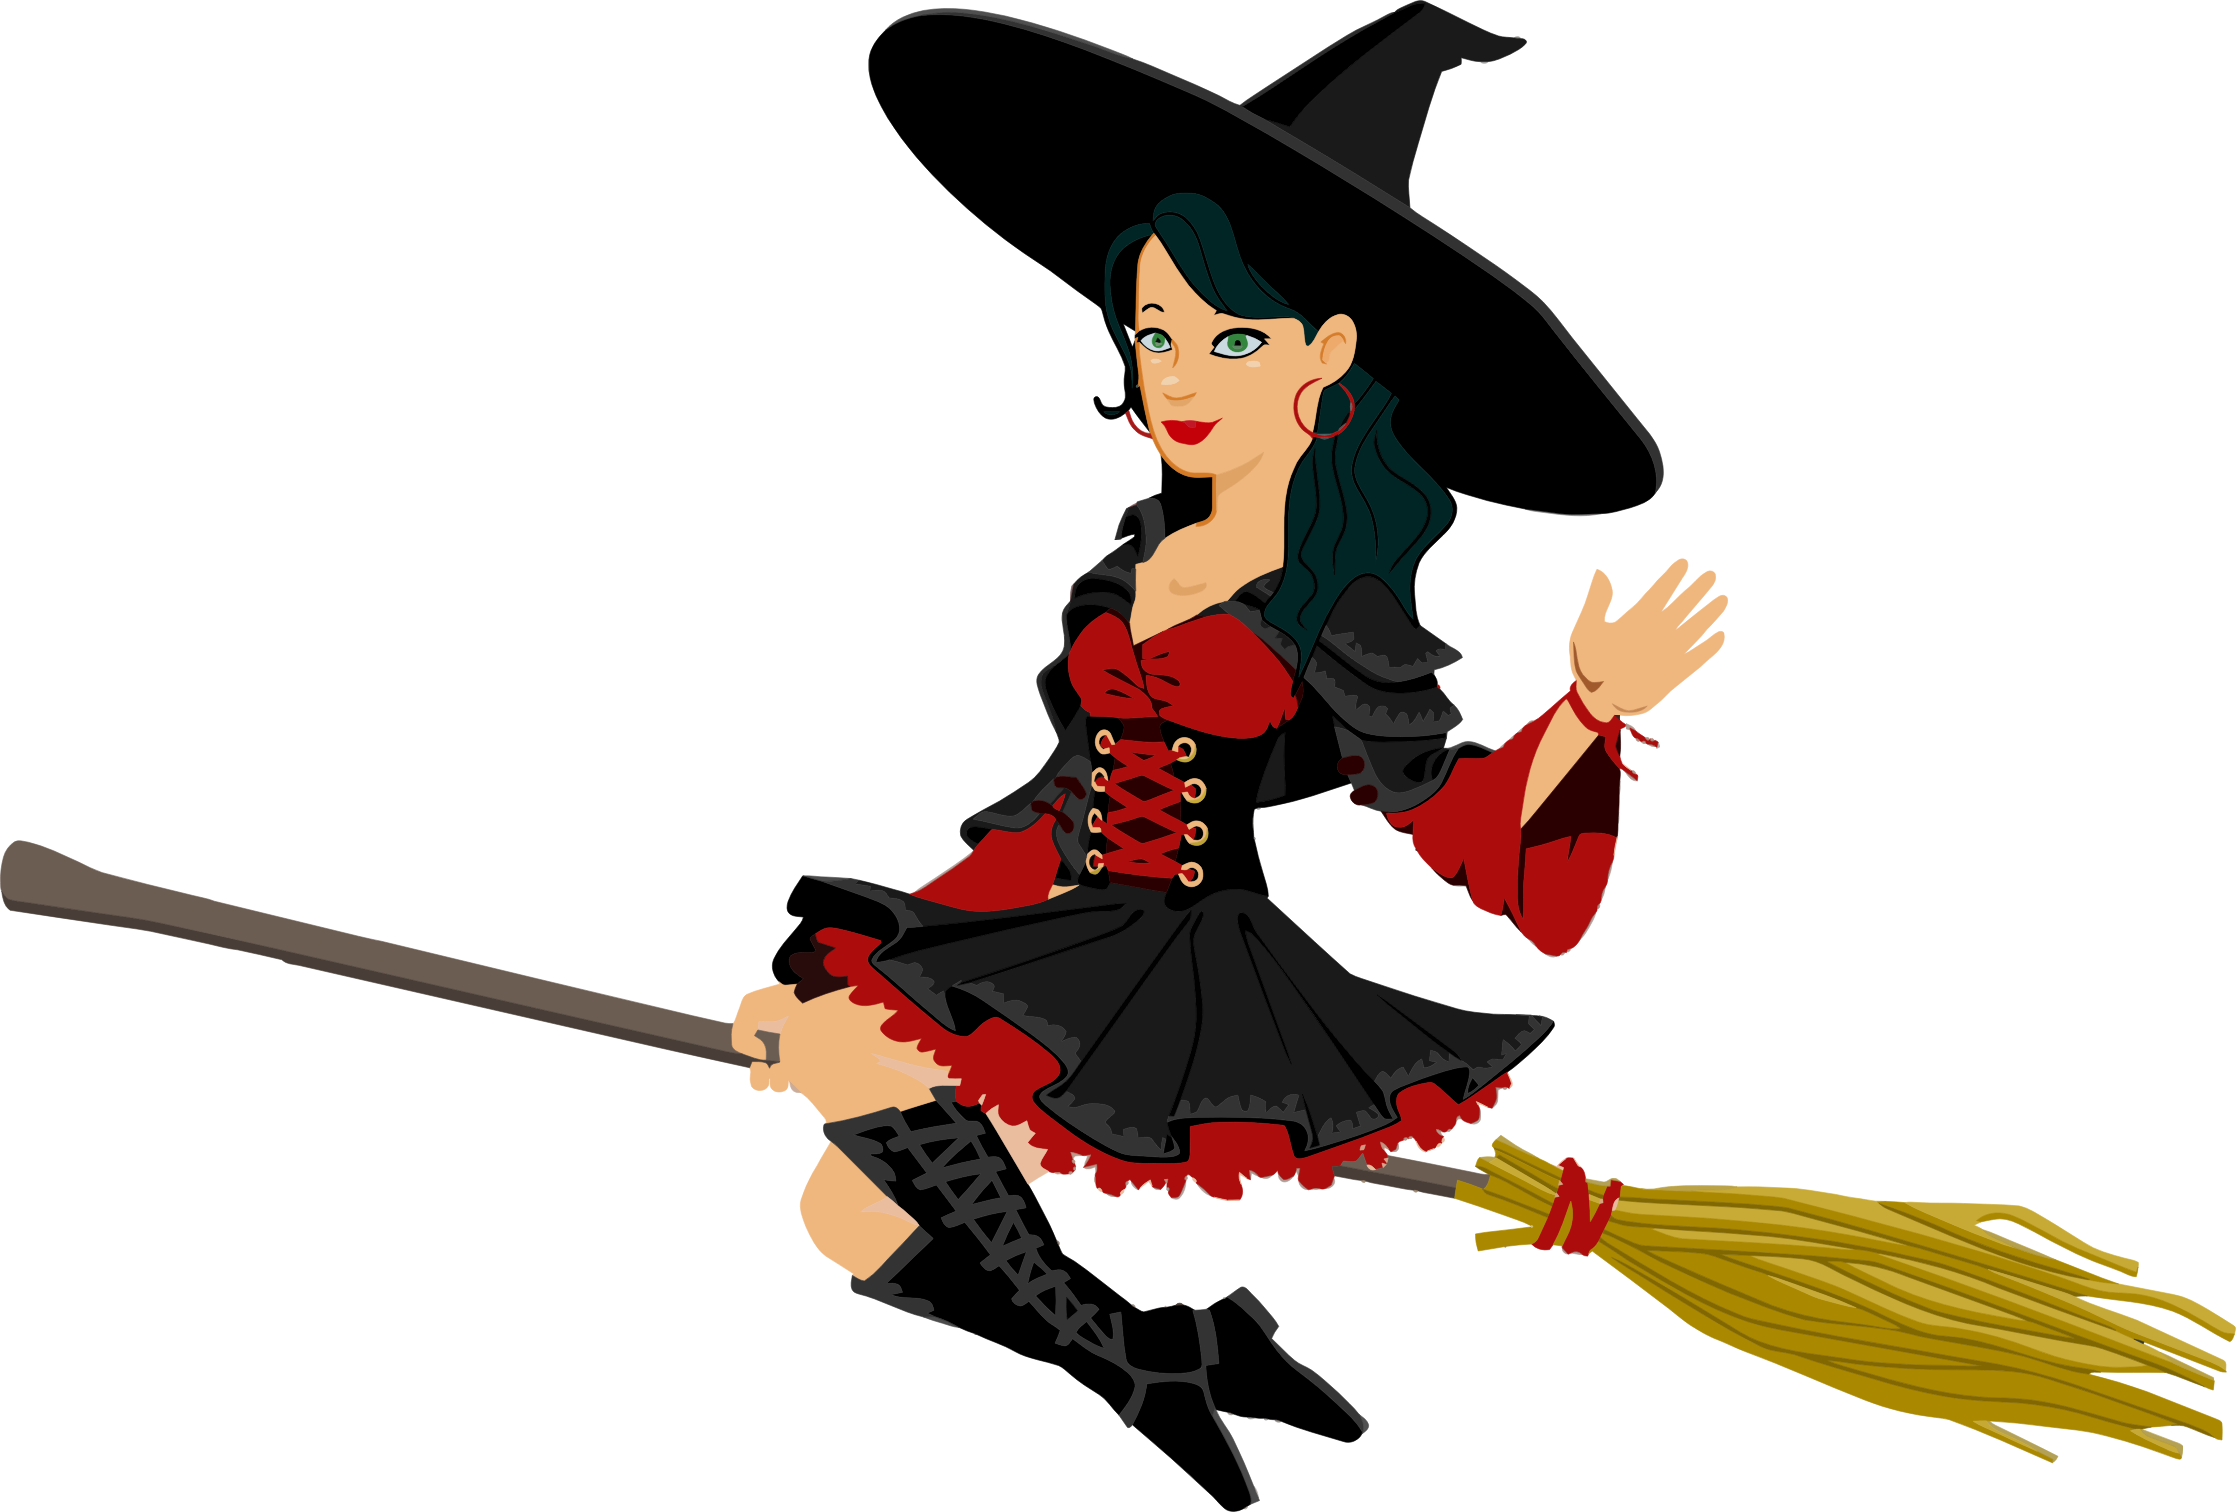 Witch halloween clipart black and white stock Flying Witch Clipart at GetDrawings.com | Free for personal use ... black and white stock